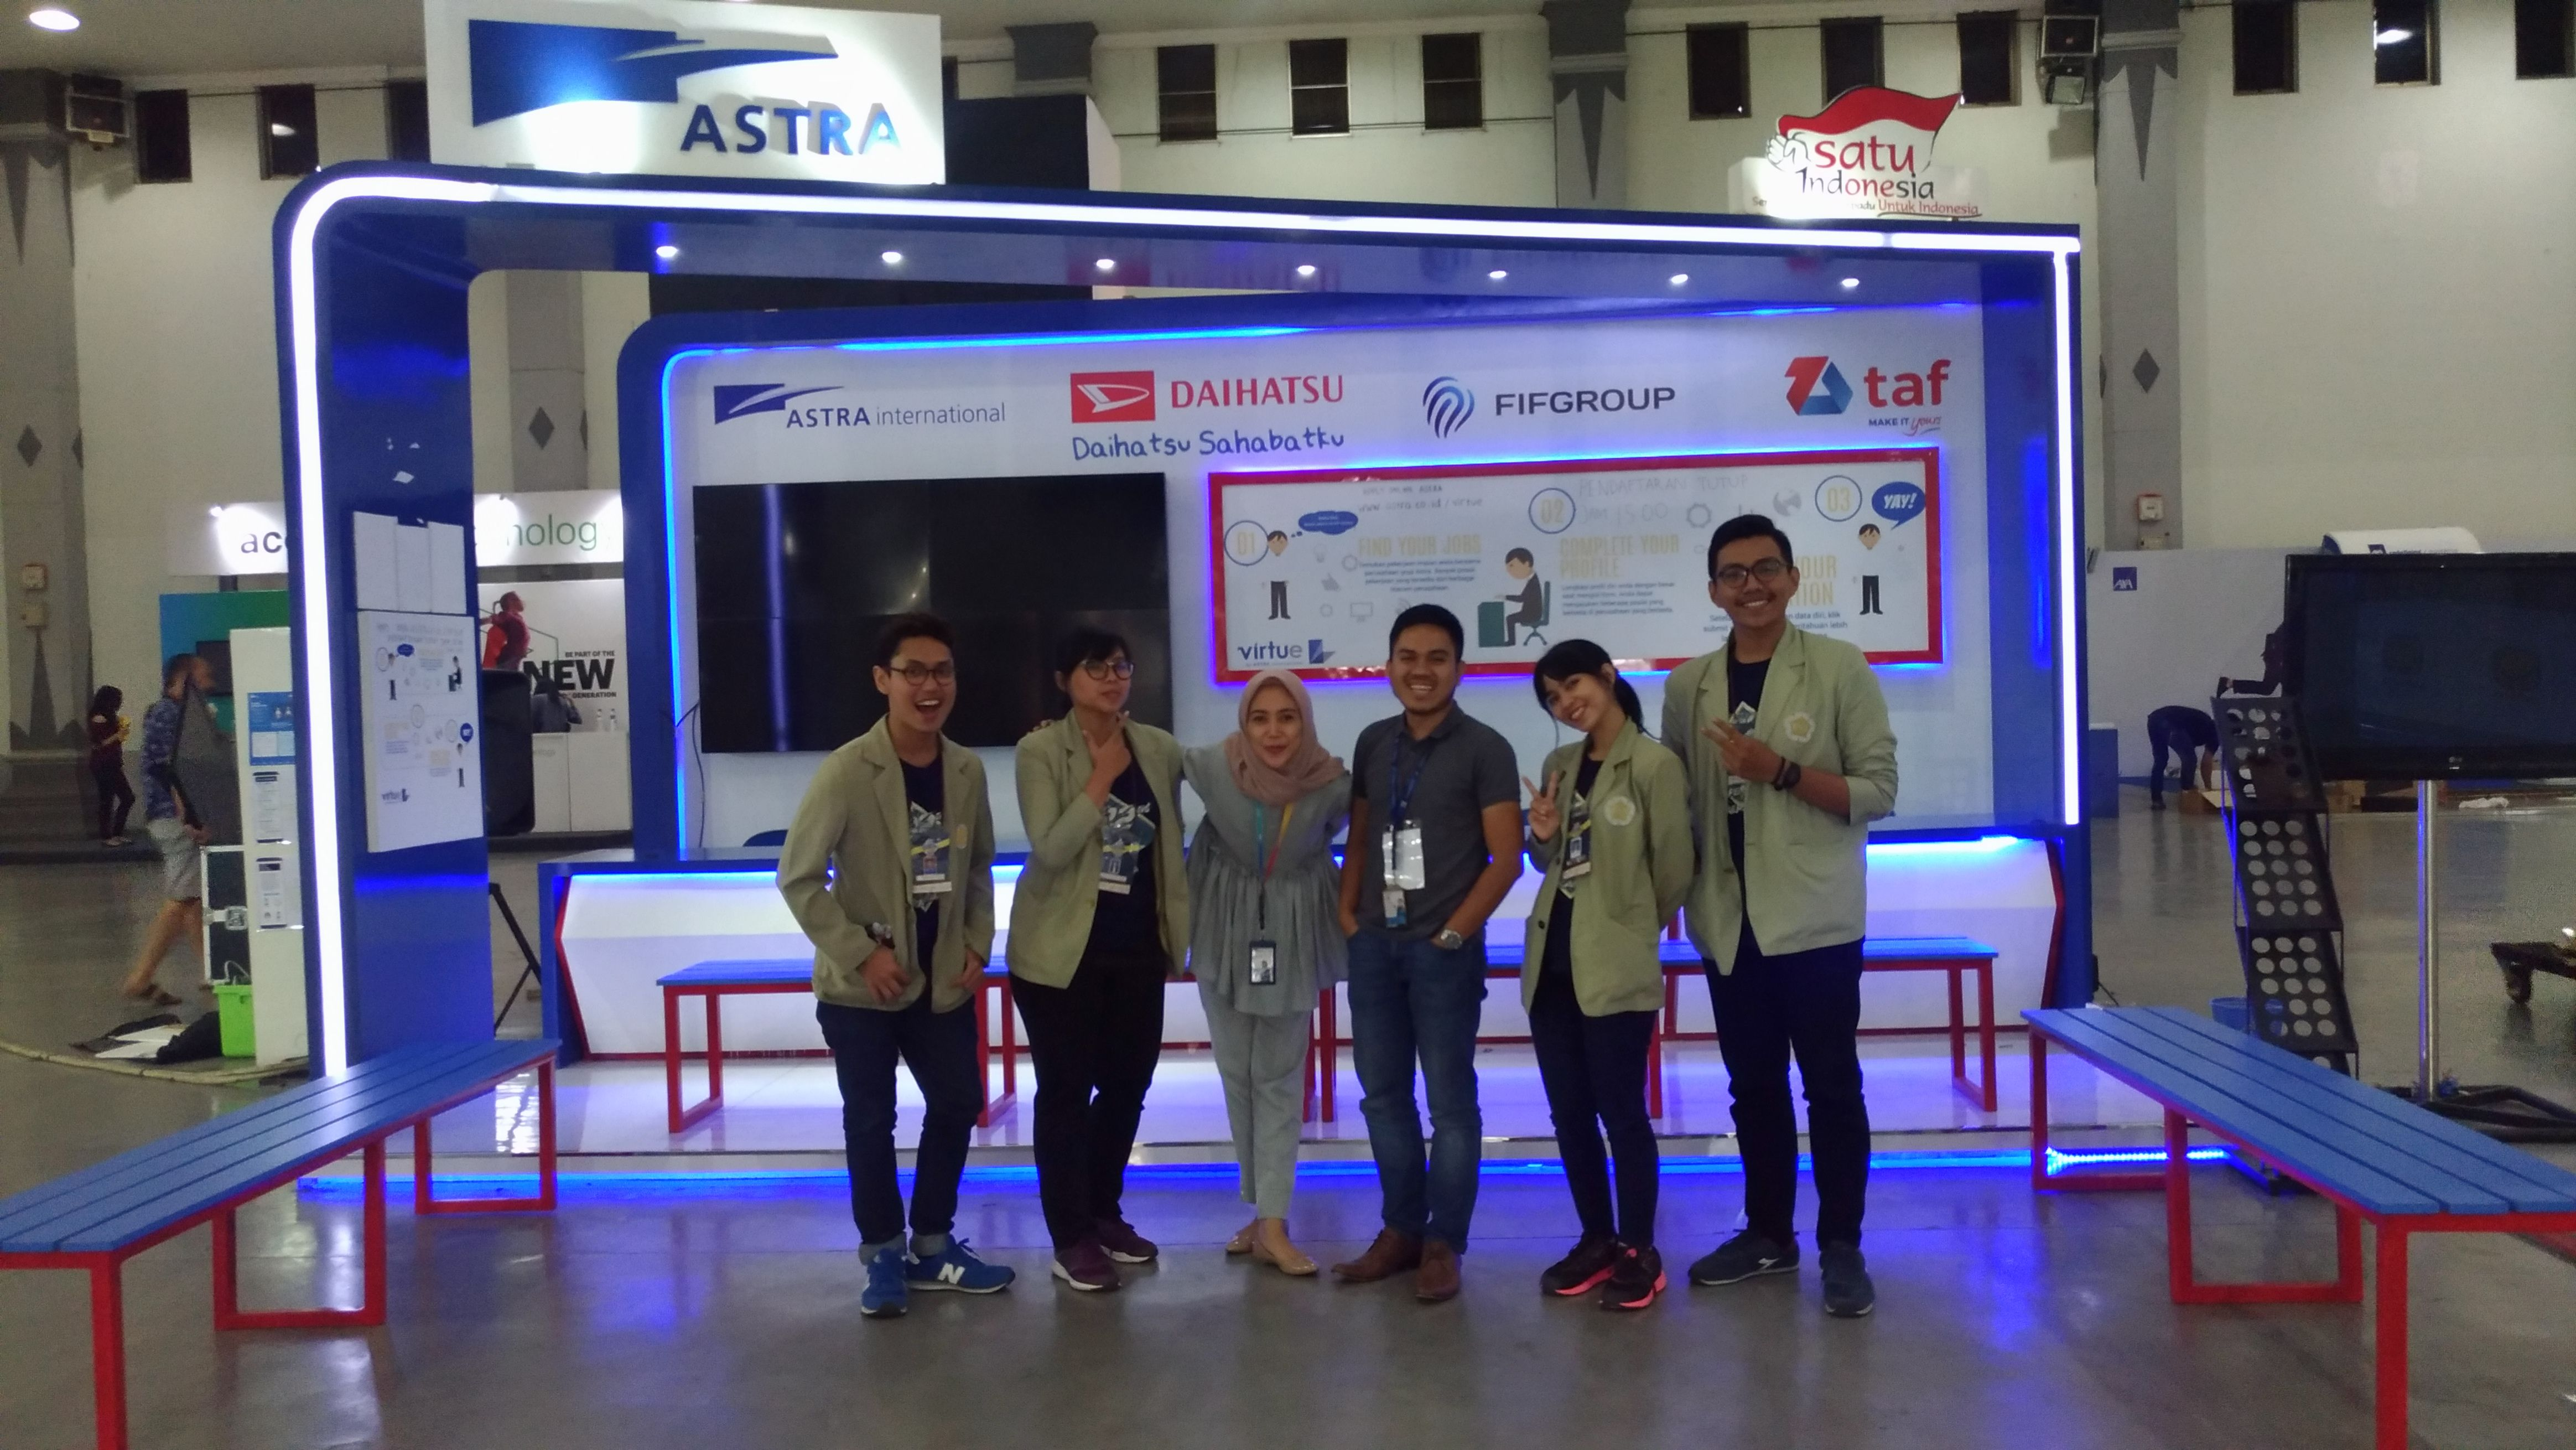 Pin By Diahwutami On Astra Career Booth Pinterest Career